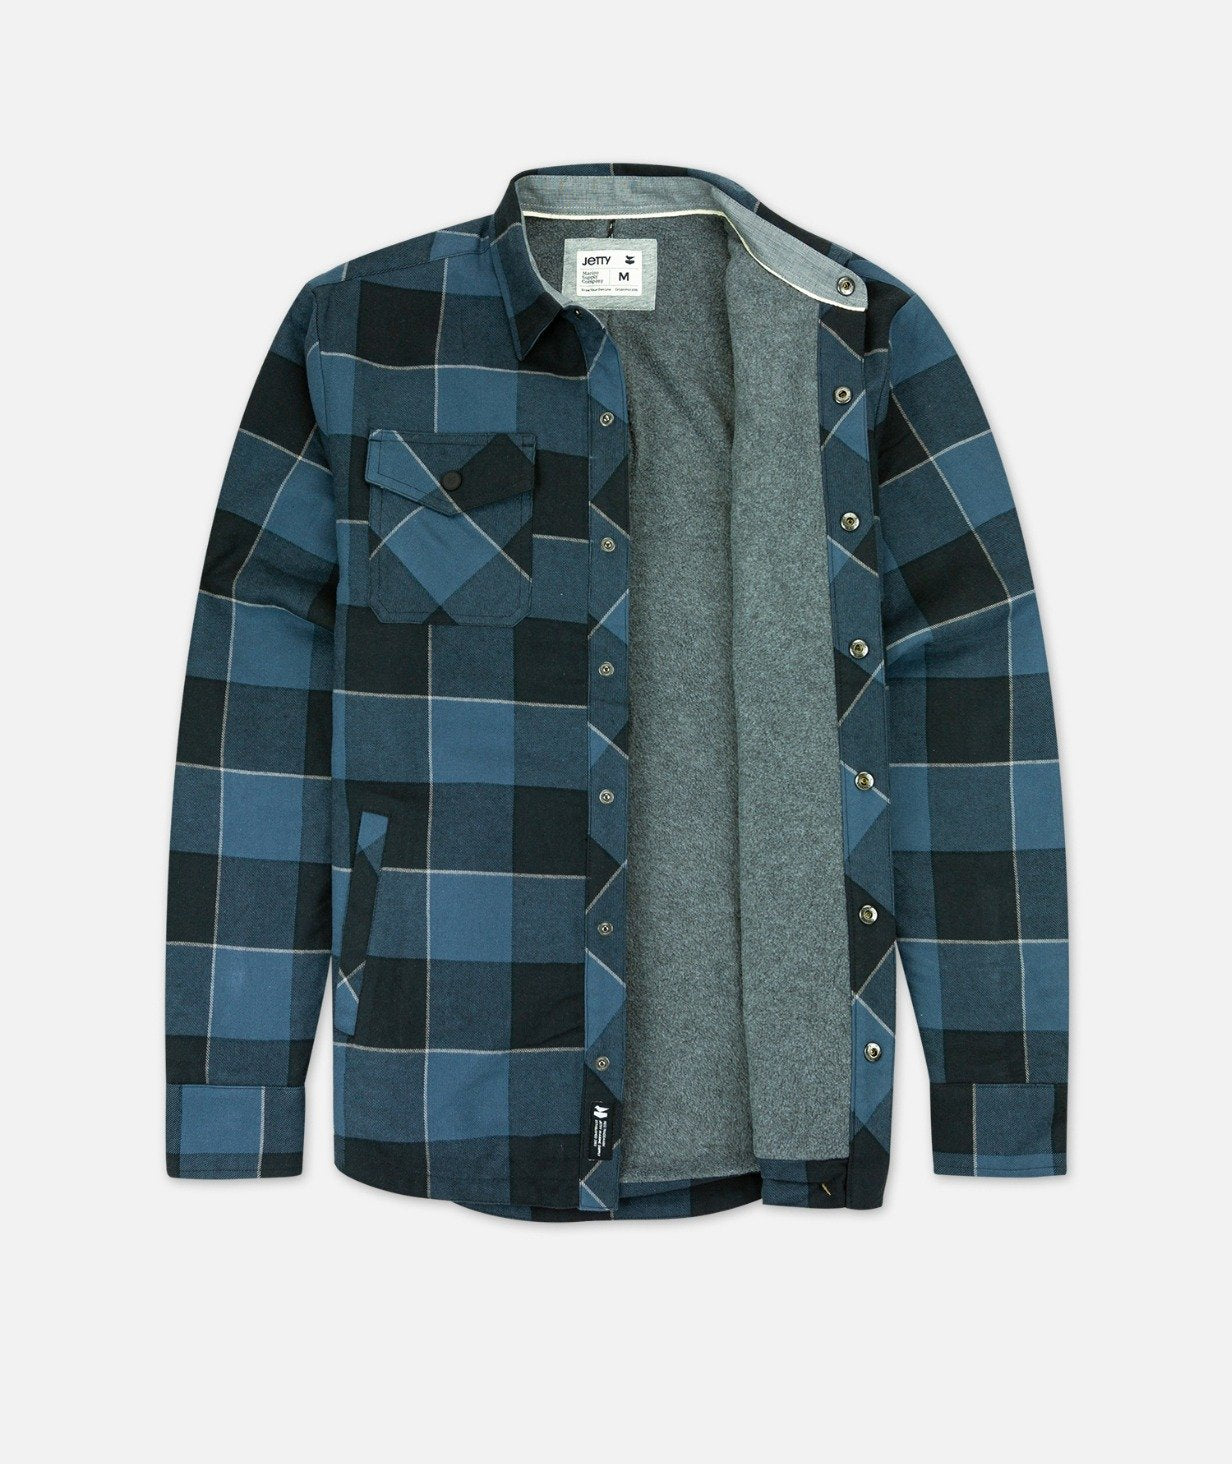 The Men's Spinner Jacket - Navy - The Lake and Company